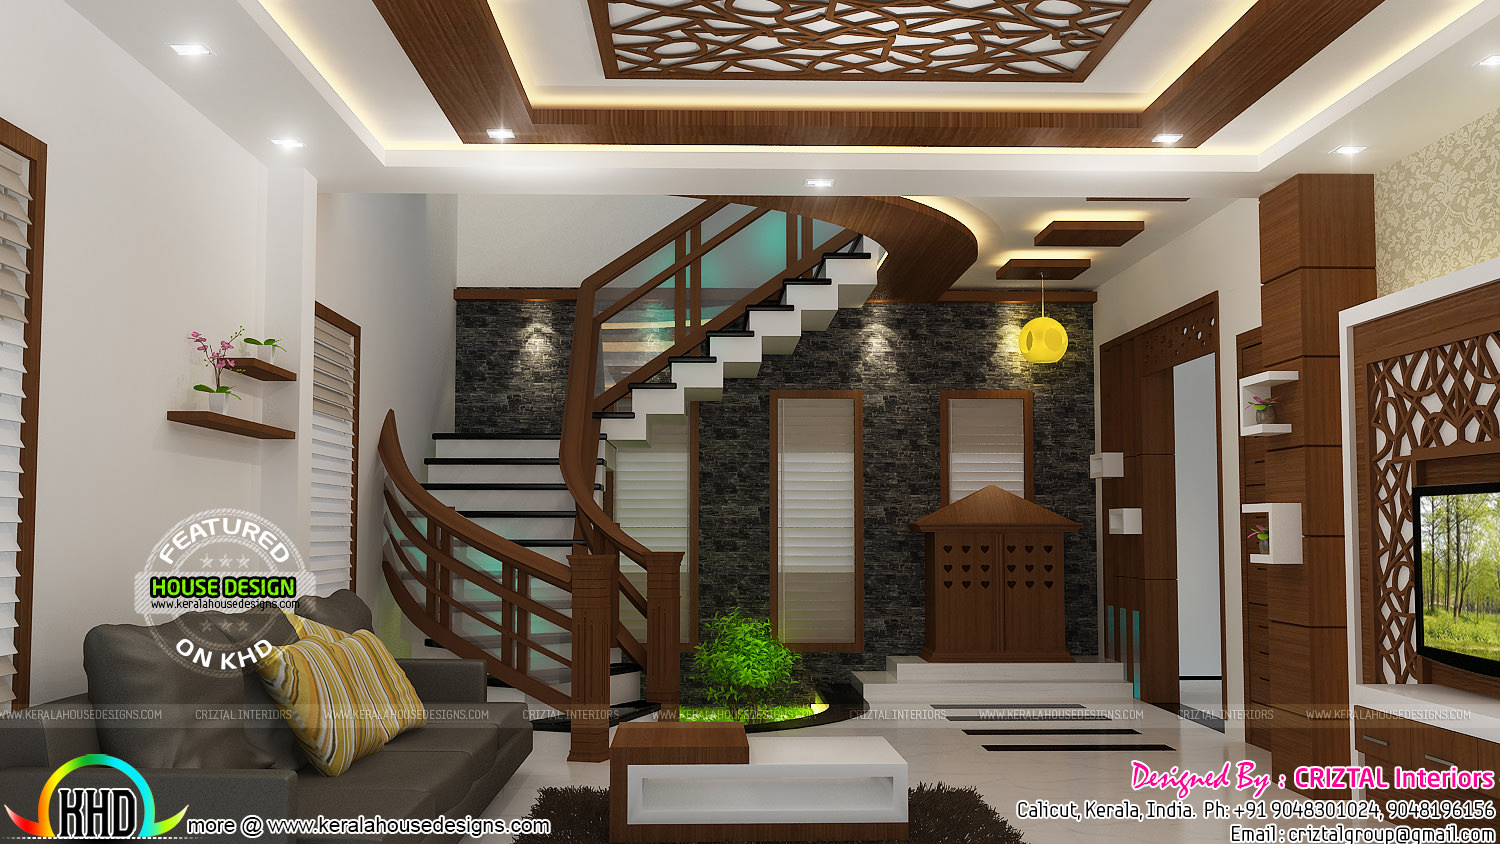 Bedroom dining hall and living interior kerala home for House hall interior design